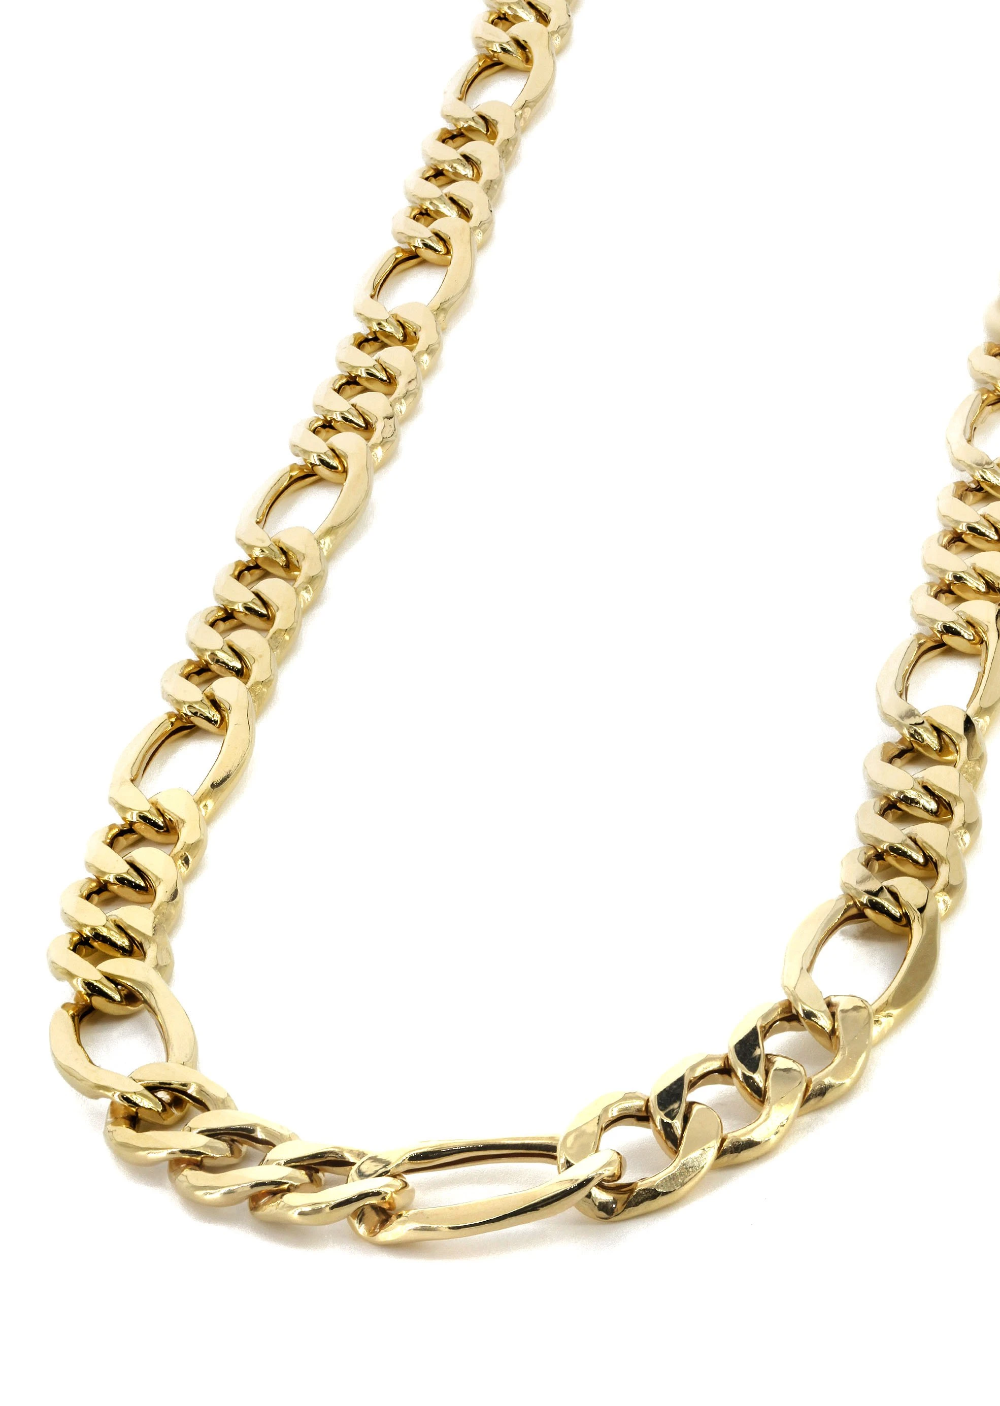 Gold Chain Mens Hollow Figaro Chain 10k Gold In 2021 Gold Chains For Men Mens Gold Jewelry Chains For Men